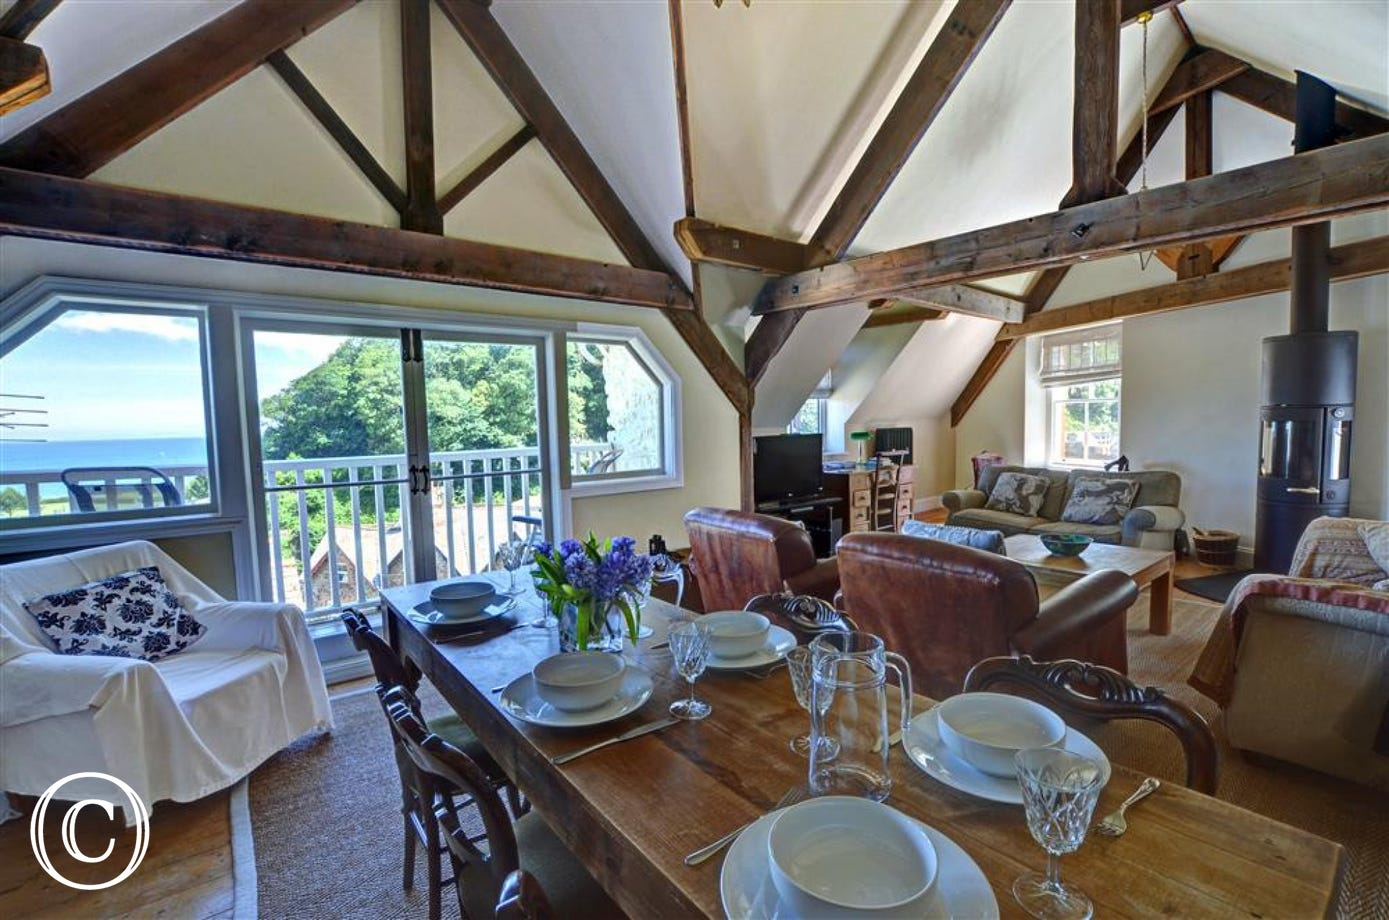 The sitting/dining room has a vaulted ceiling with impressive 'A' frame oak beams.